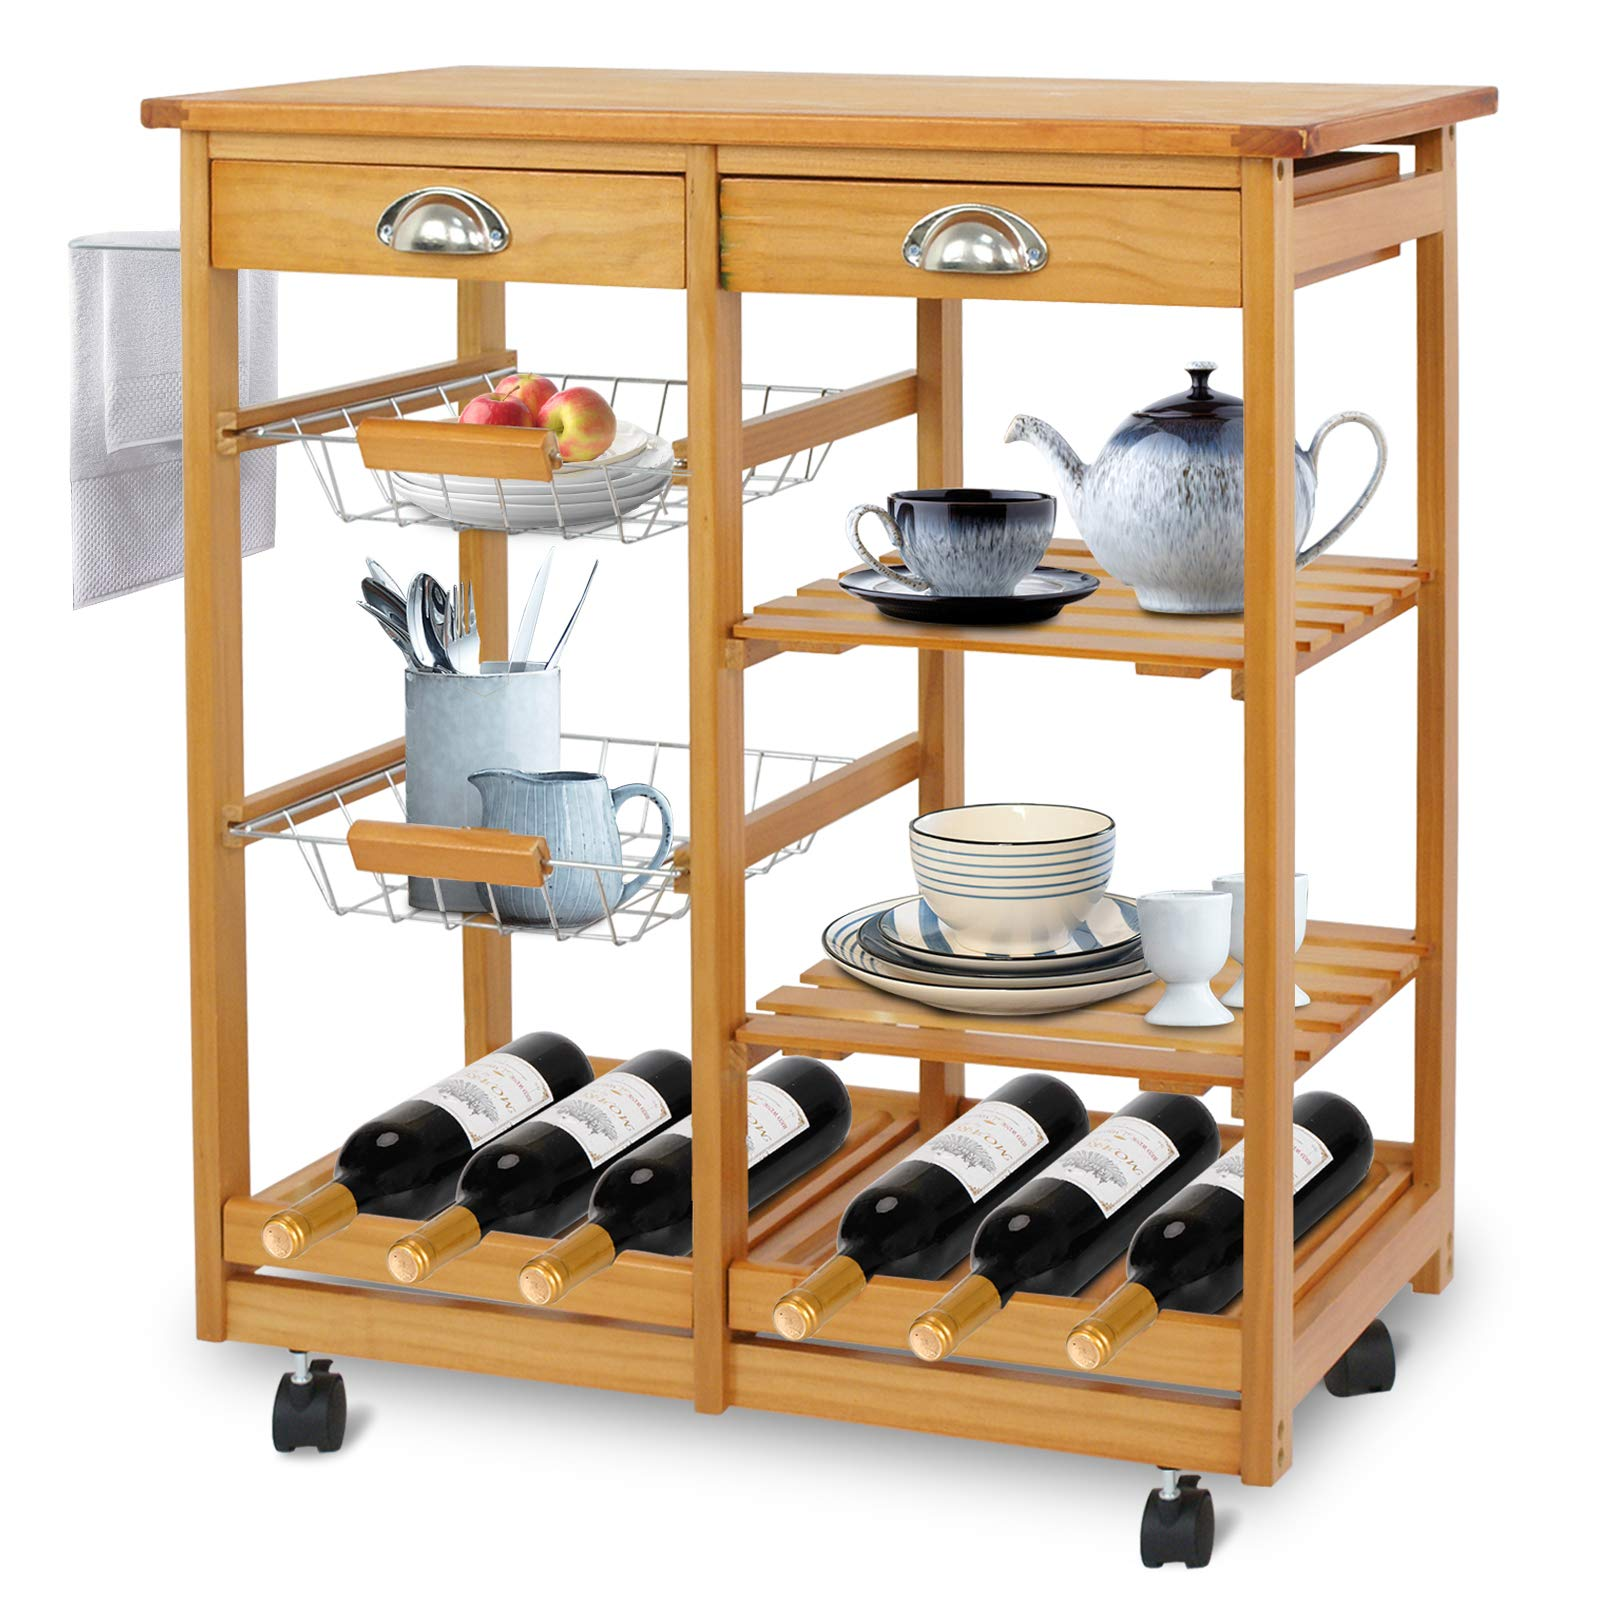 SUPER DEAL Multi-Purpose Wood Rolling Kitchen Island Trolley w/Drawer Shelves Basket by SUPER DEAL